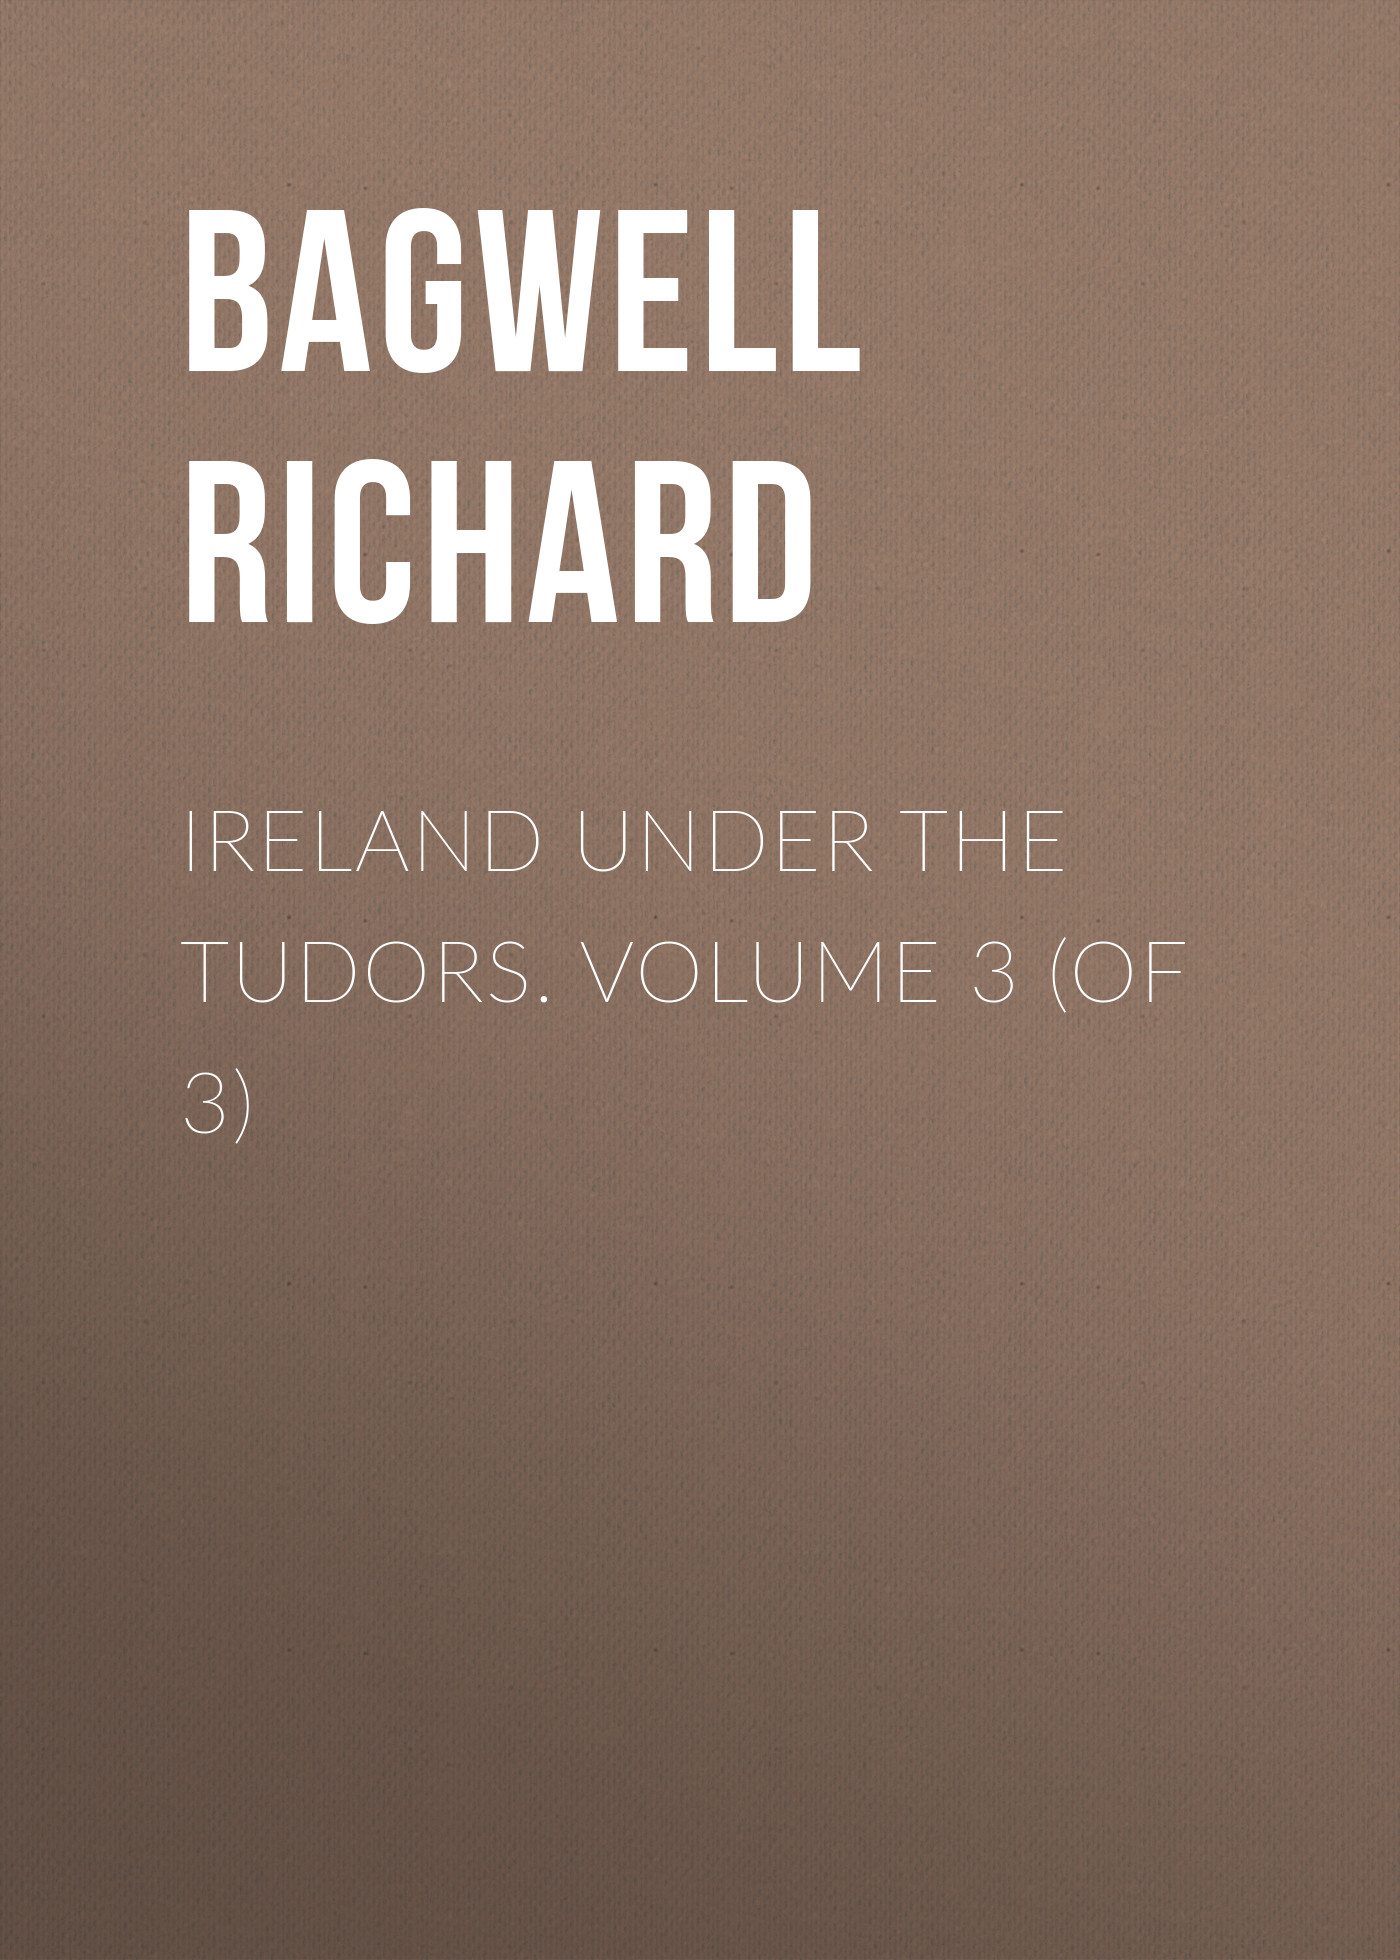 Bagwell Richard Ireland under the Tudors. Volume 3 (of 3)